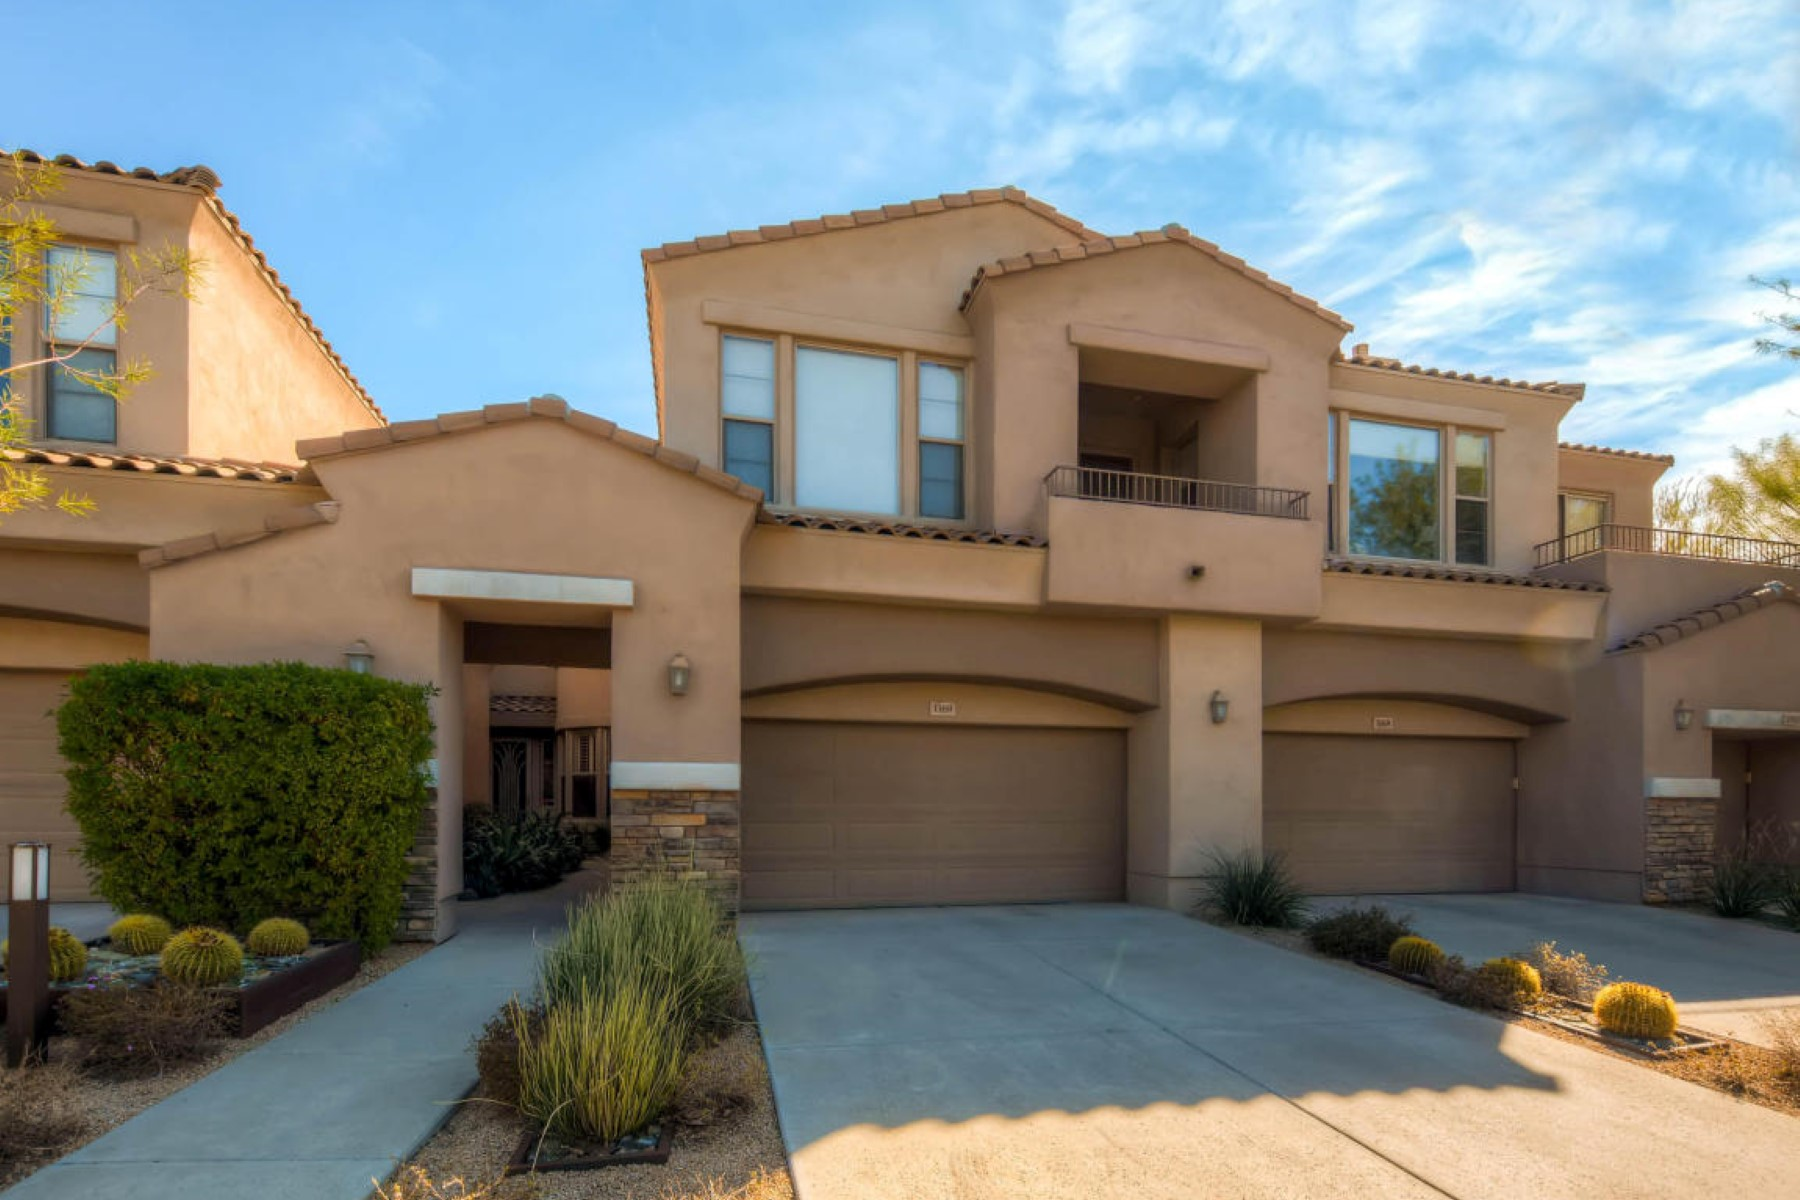 Townhouse for Sale at 1st level townhome with a lovely setting 19475 N Grayhaw Dr #1169 Scottsdale, Arizona 85255 United States